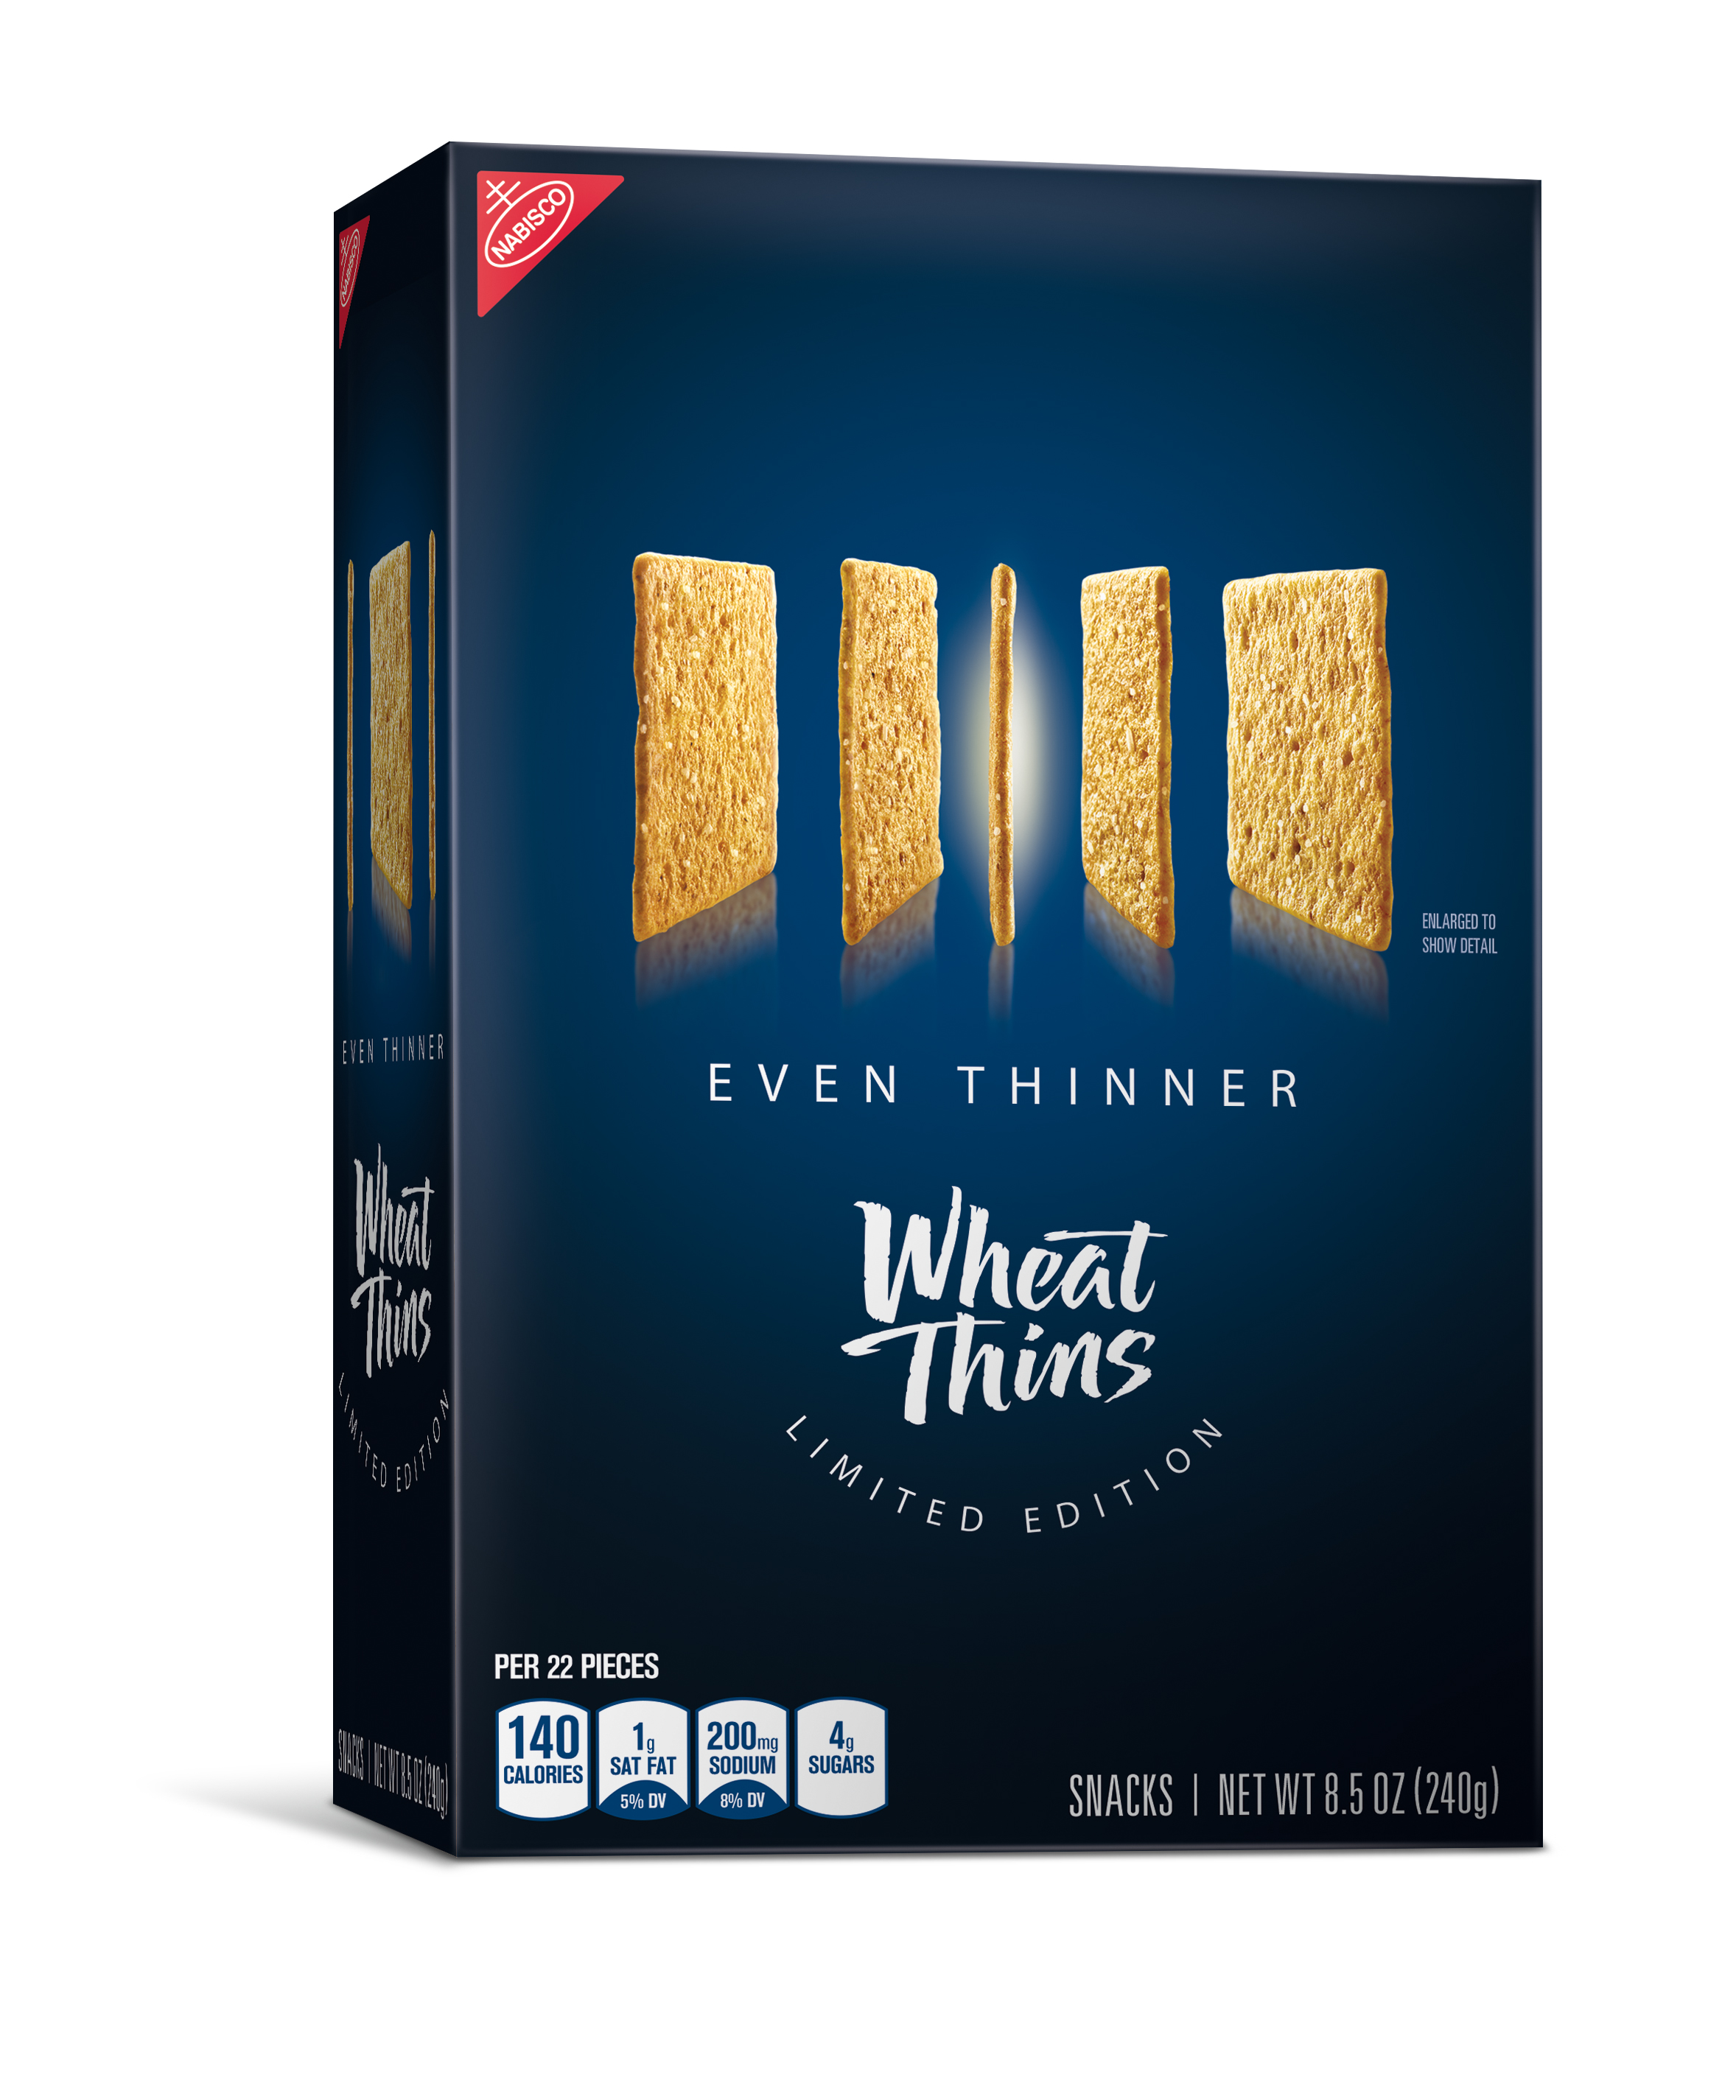 Wheat Thins Gets A Skinnier Look